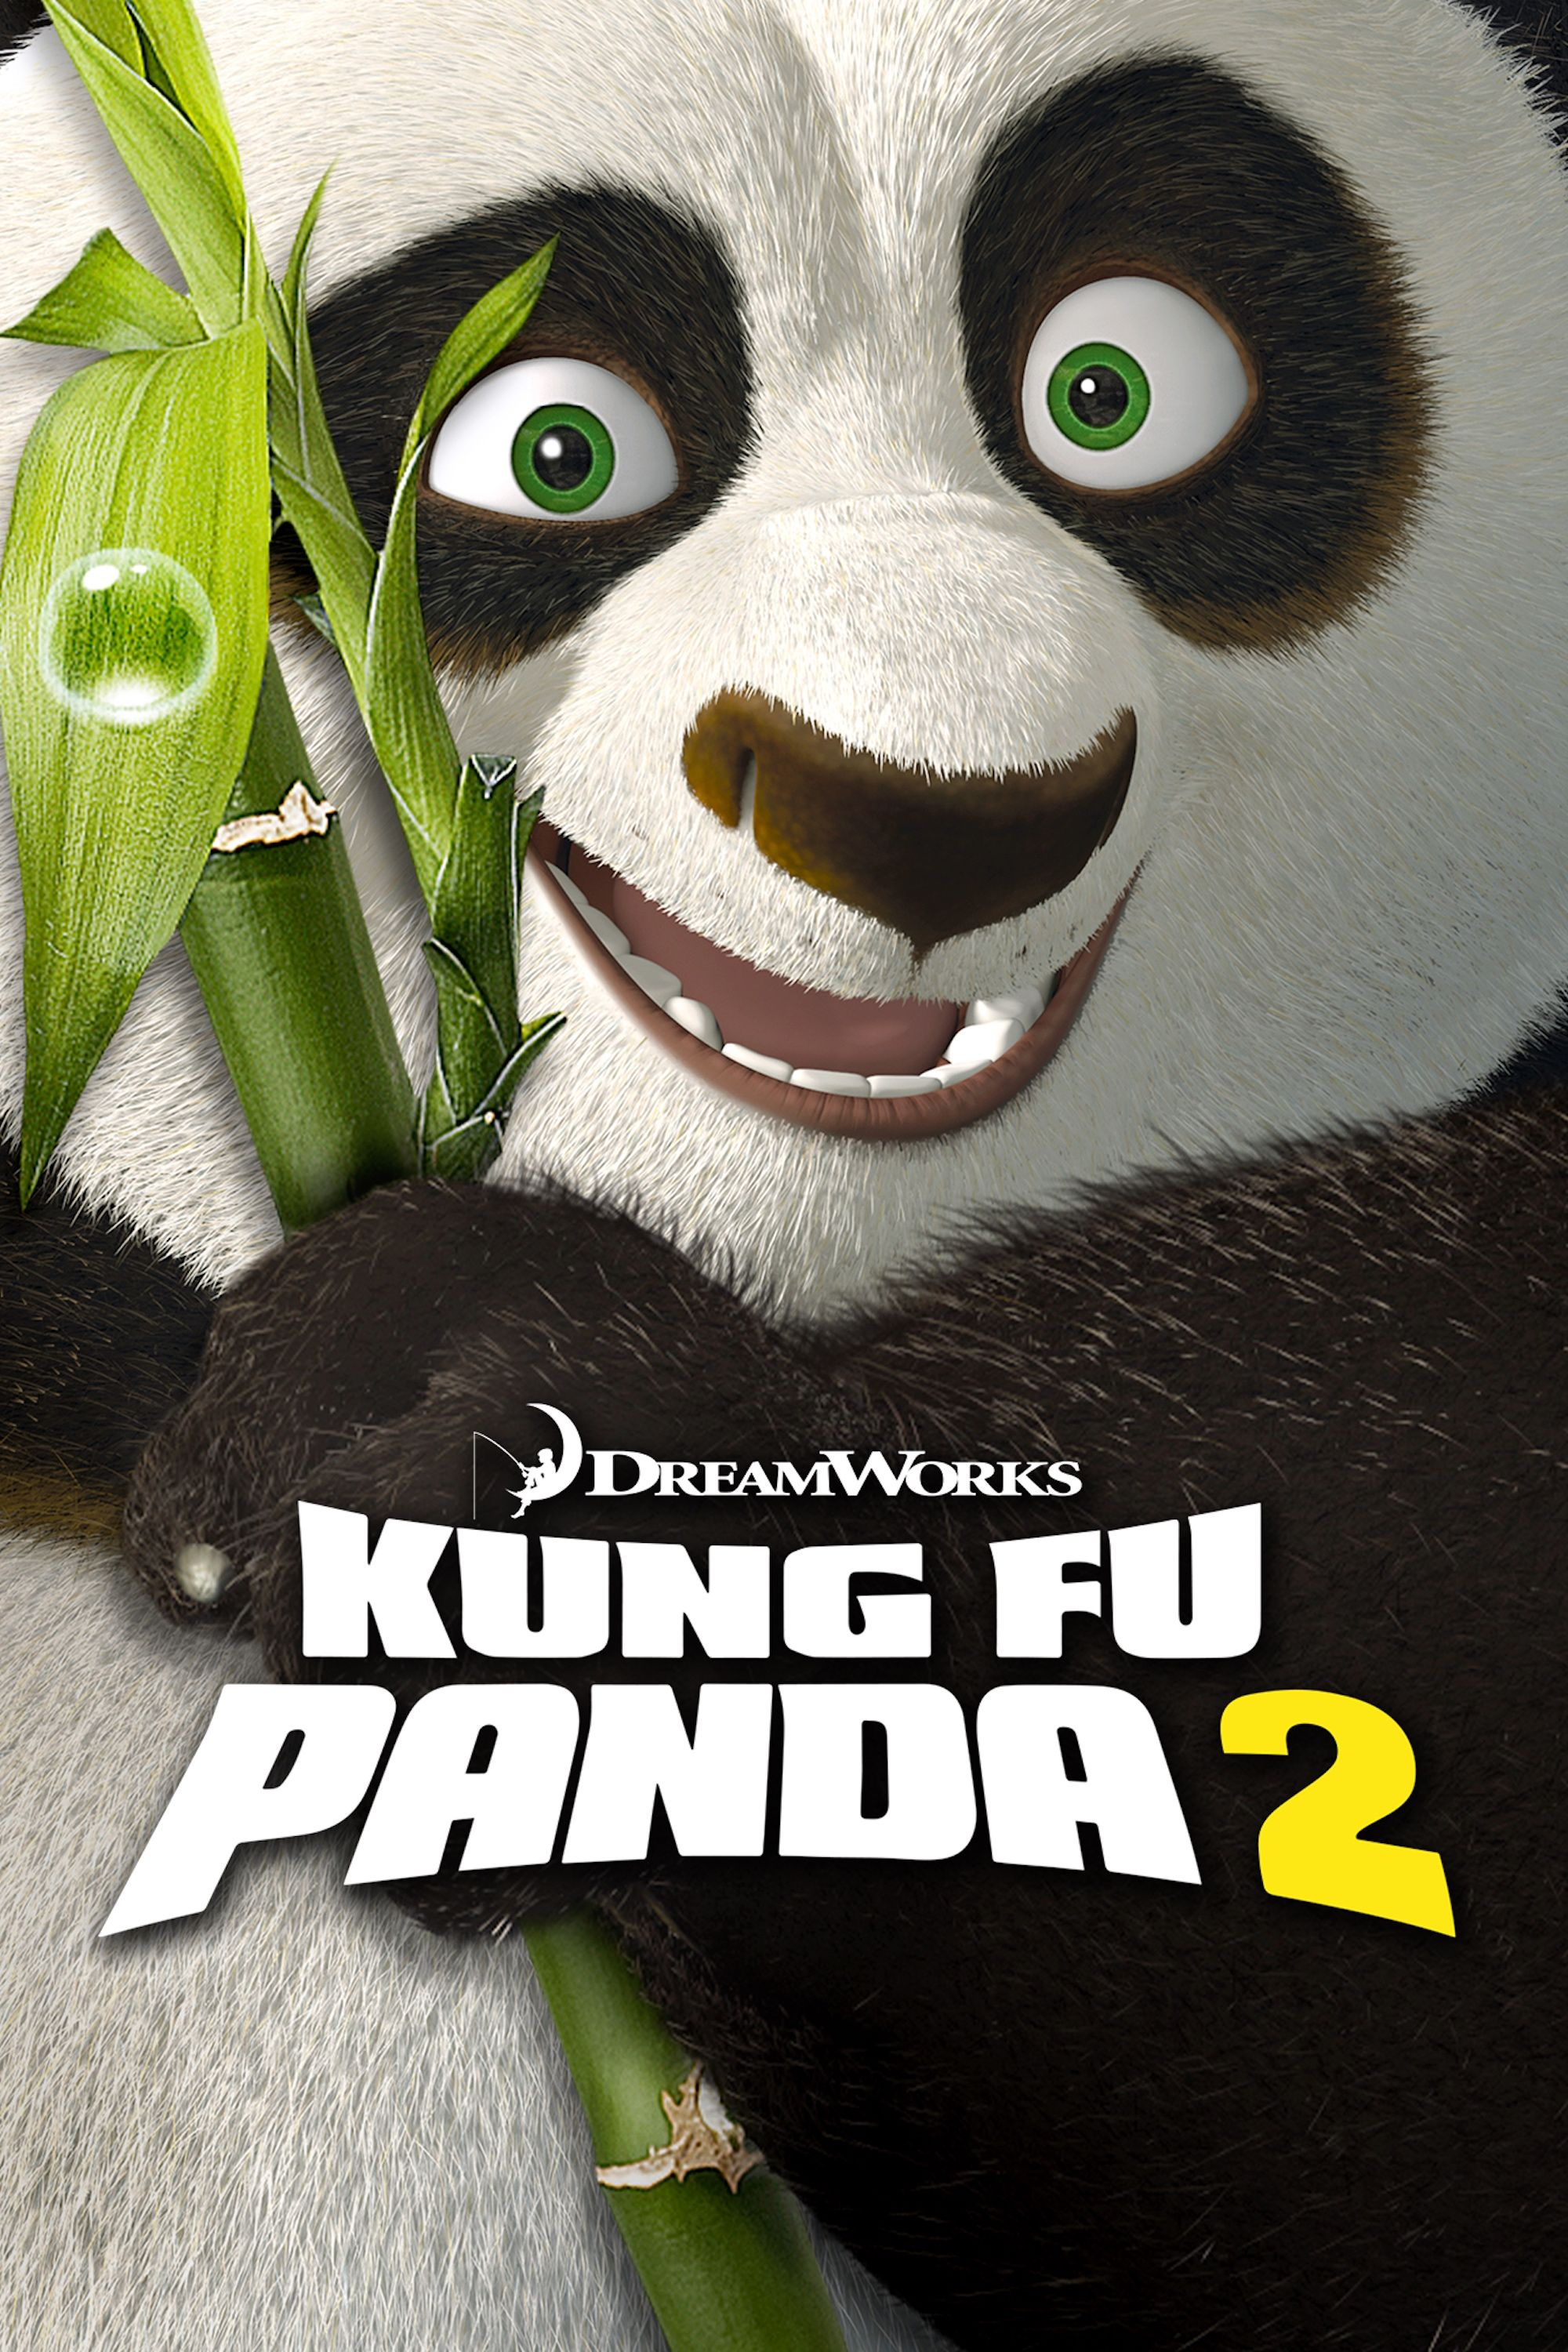 Kung fu panda 2 full movie hindi cartoon